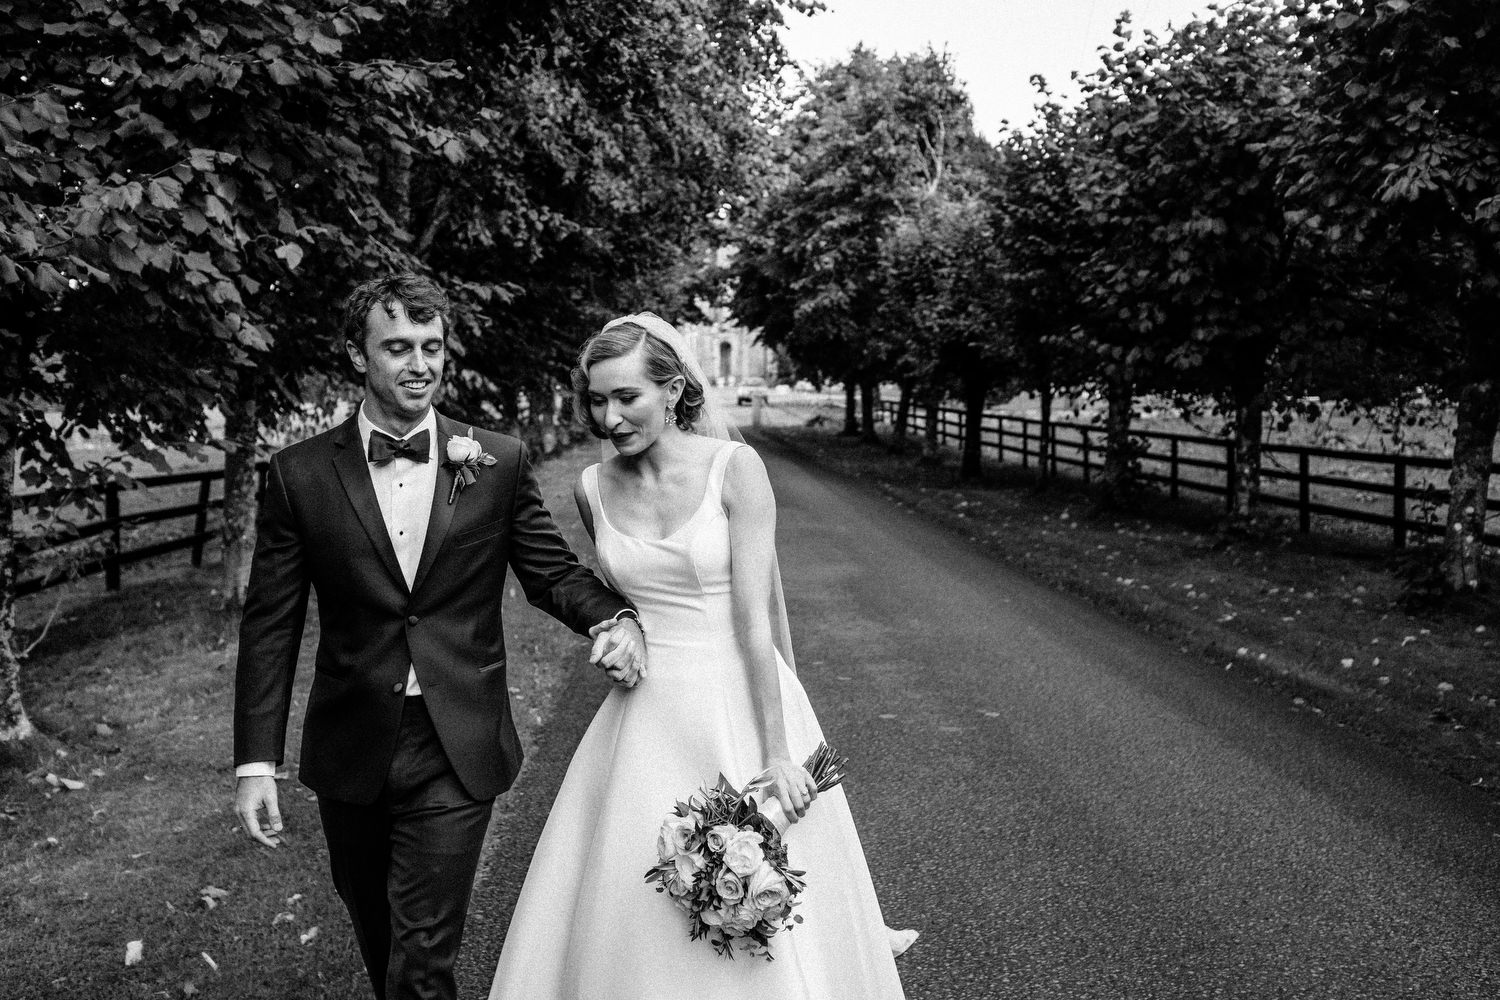 000000000000000000000151_bride_style_vintage_photography_david_mcclelland_ireland_castle_hollywood_kinnity_wedding_photographer_fujifilm